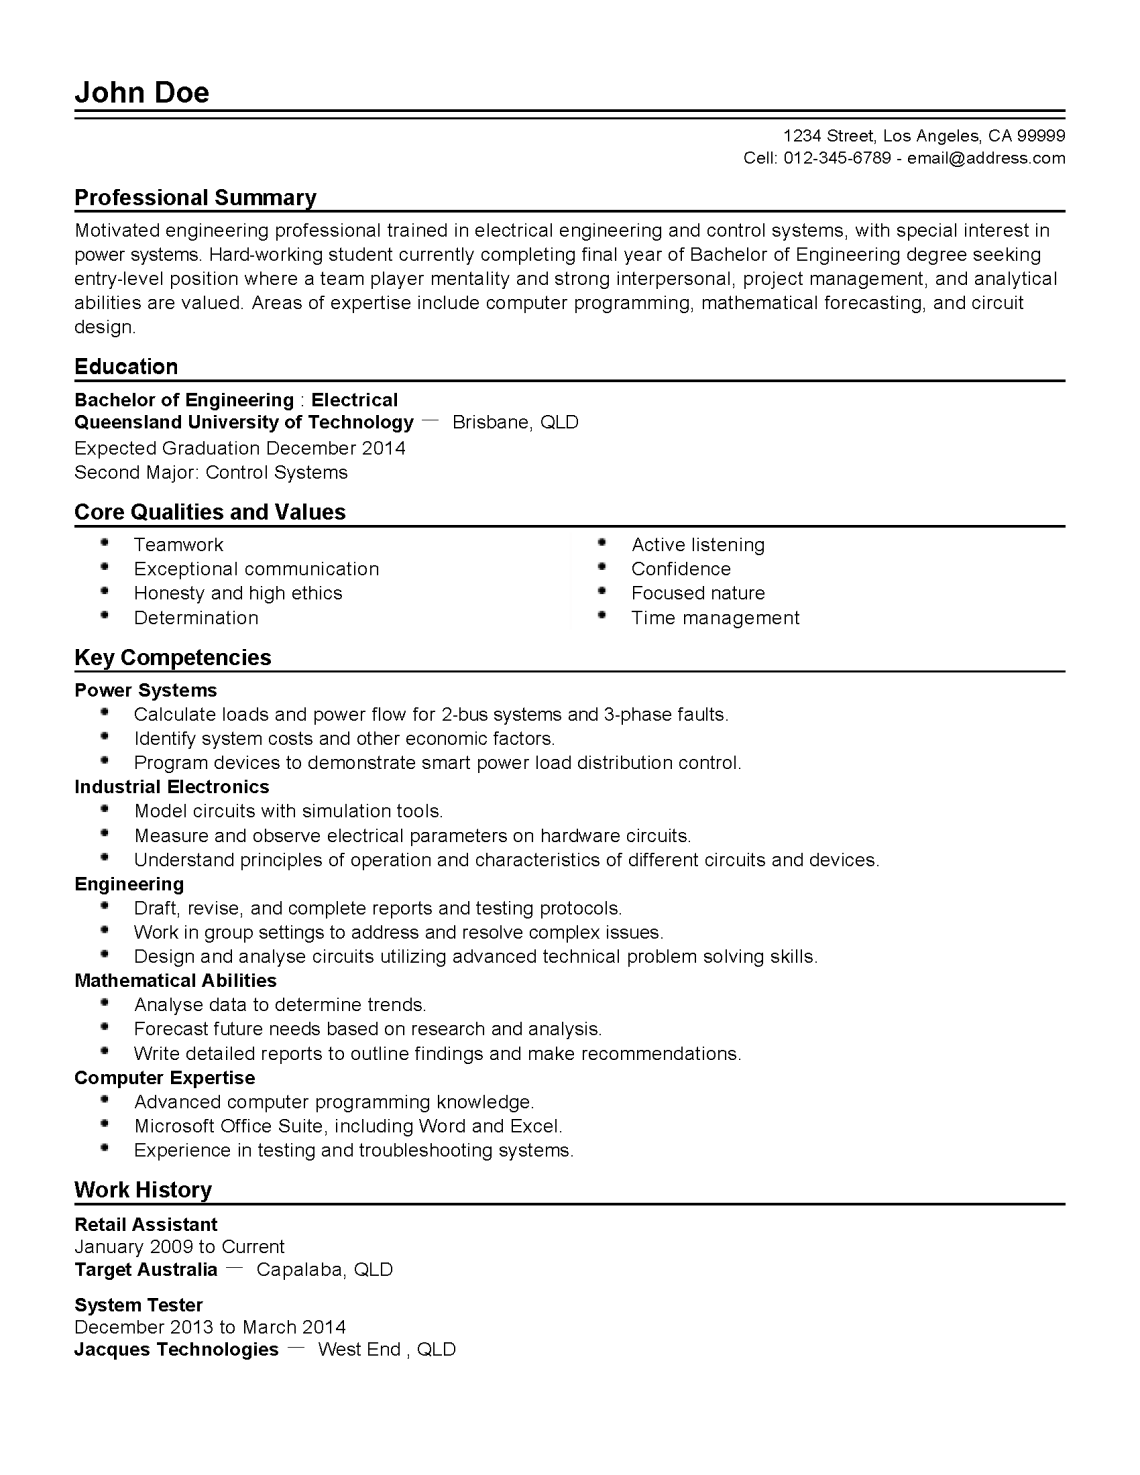 process safety engineer sample resume example marketing cover letter sample cover letter for process safety engineer cover letter entry resume for stephen ball sample cover